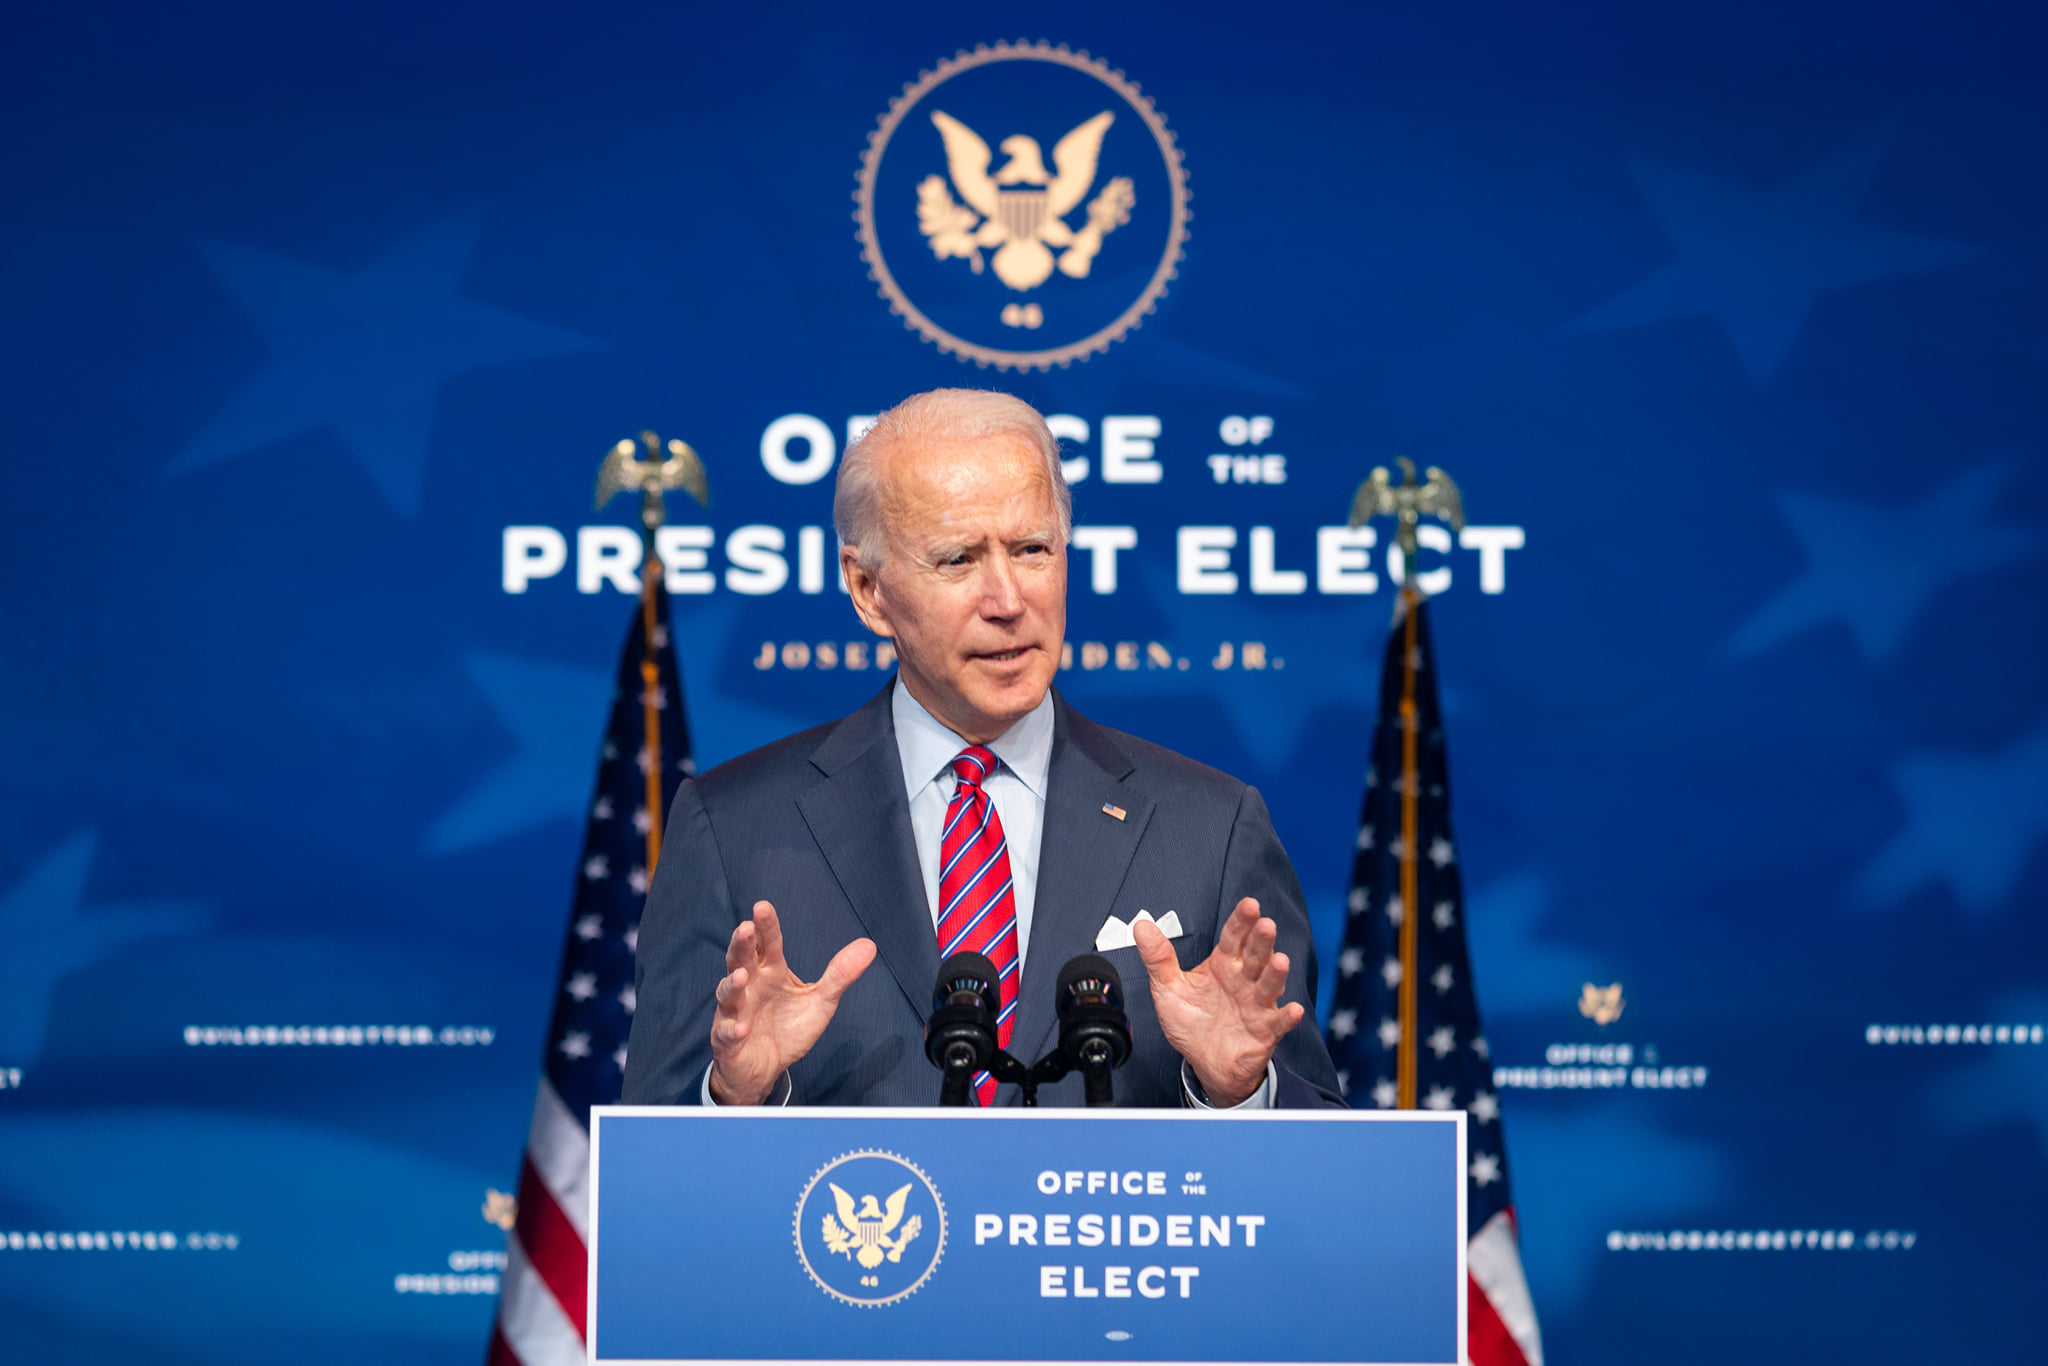 Biden Administration Must Go Further in Financial Disclosures to Reveal Possible Conflicts of Interest in Foreign Policy Making, Groups Say in Open Letter